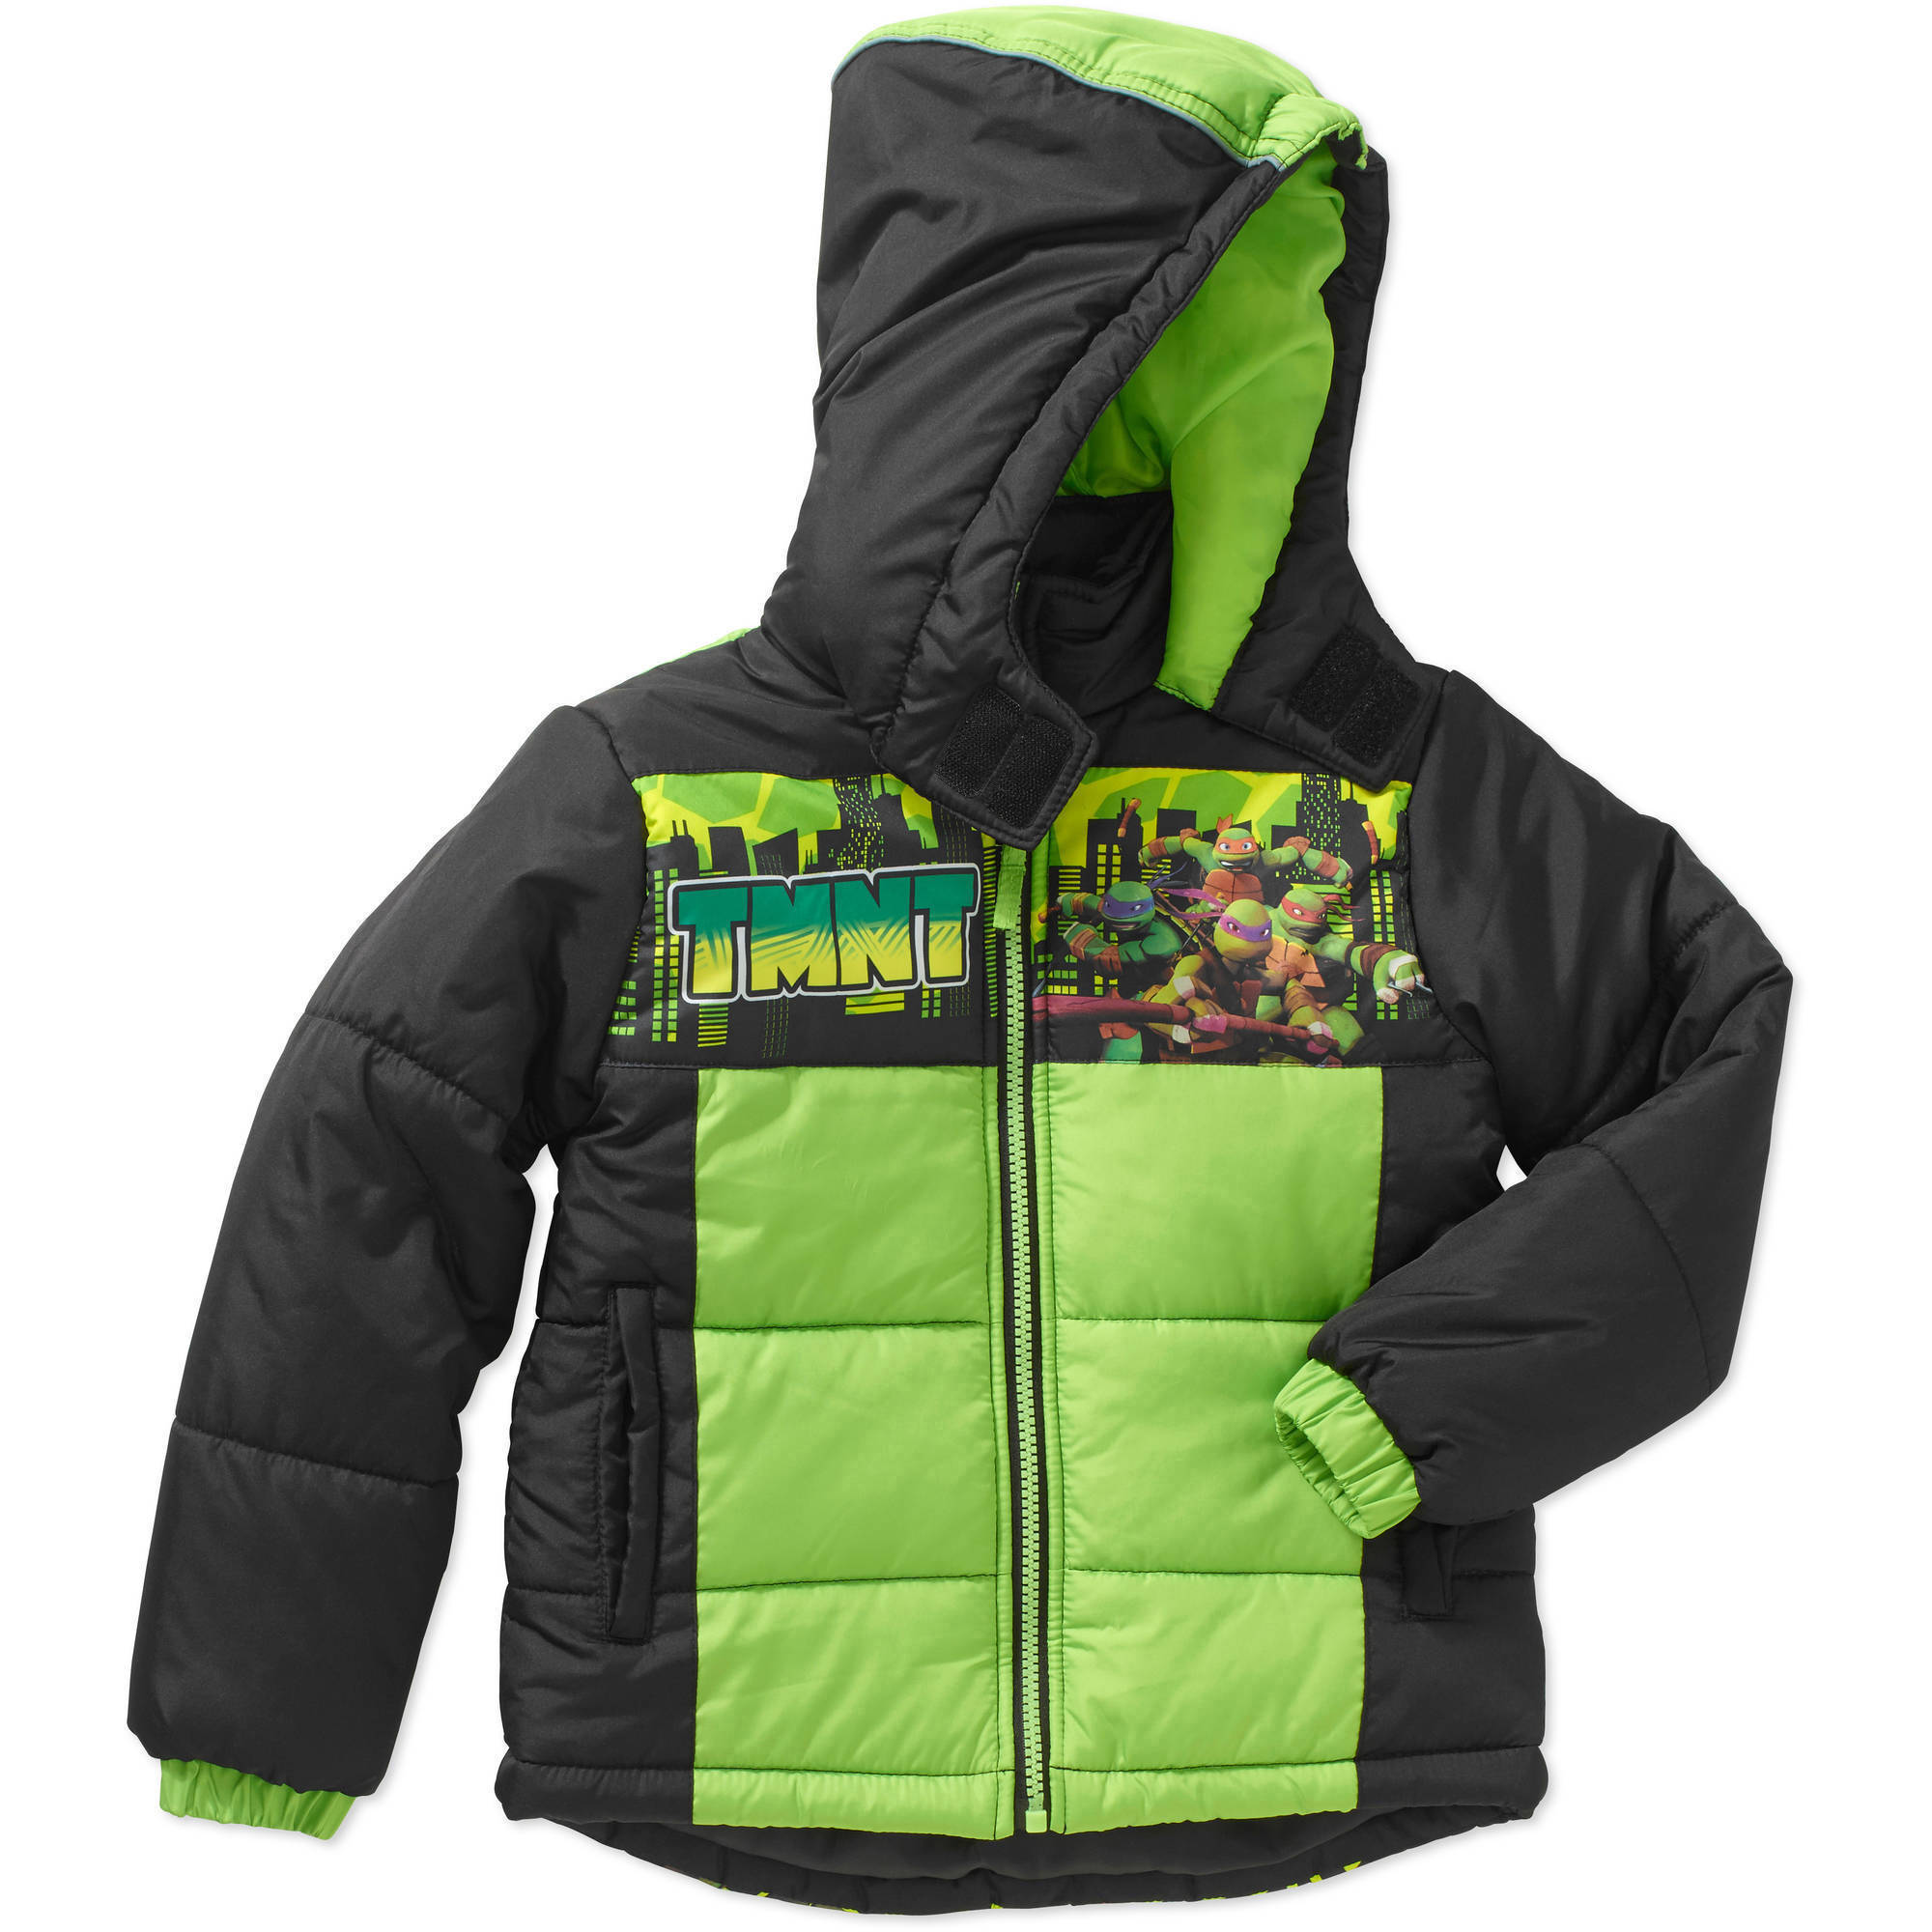 Little Boys' Licensed Puff Jacket, Available in 4 Characters